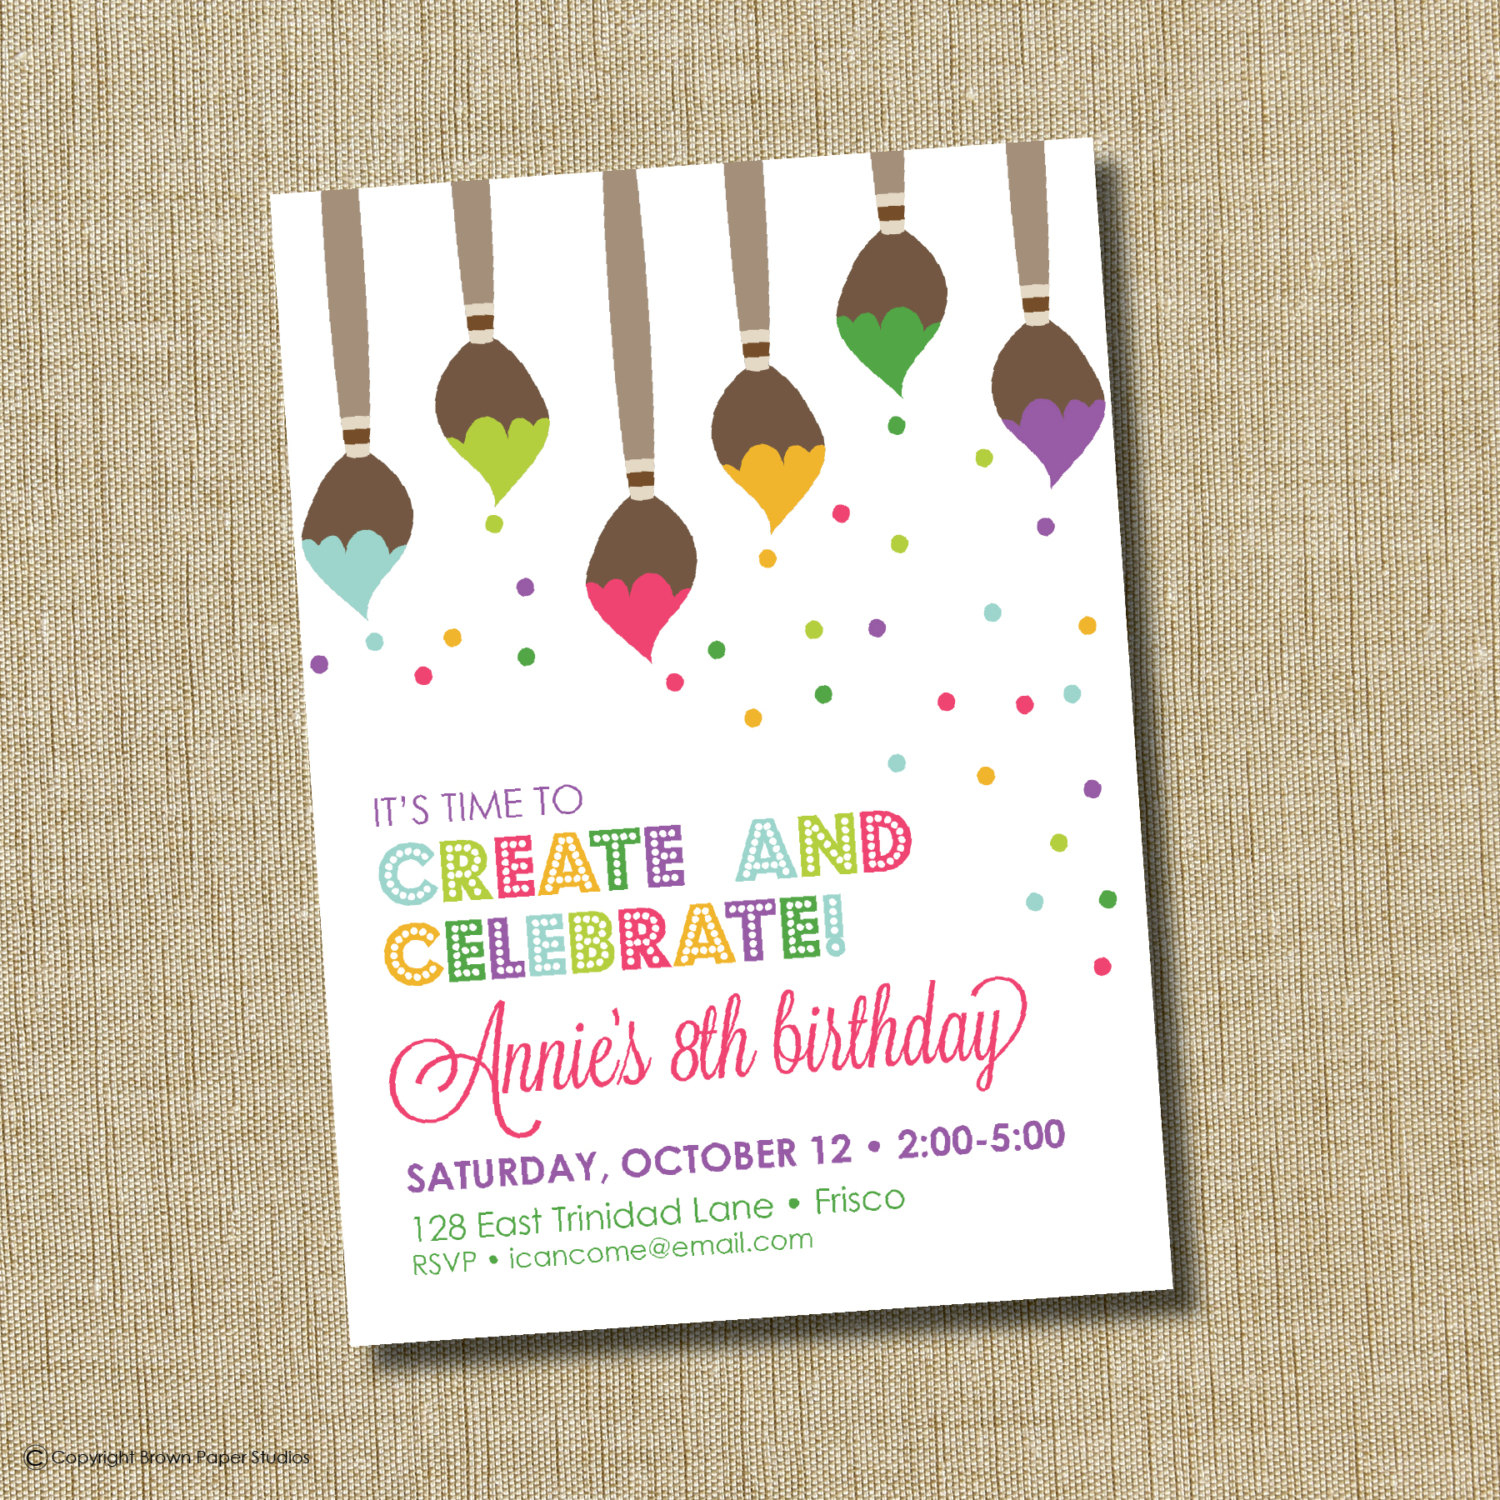 Birthday Invitation Templates Evite Online Envelopes Frozen 50th I intended for size 1500 X 1500